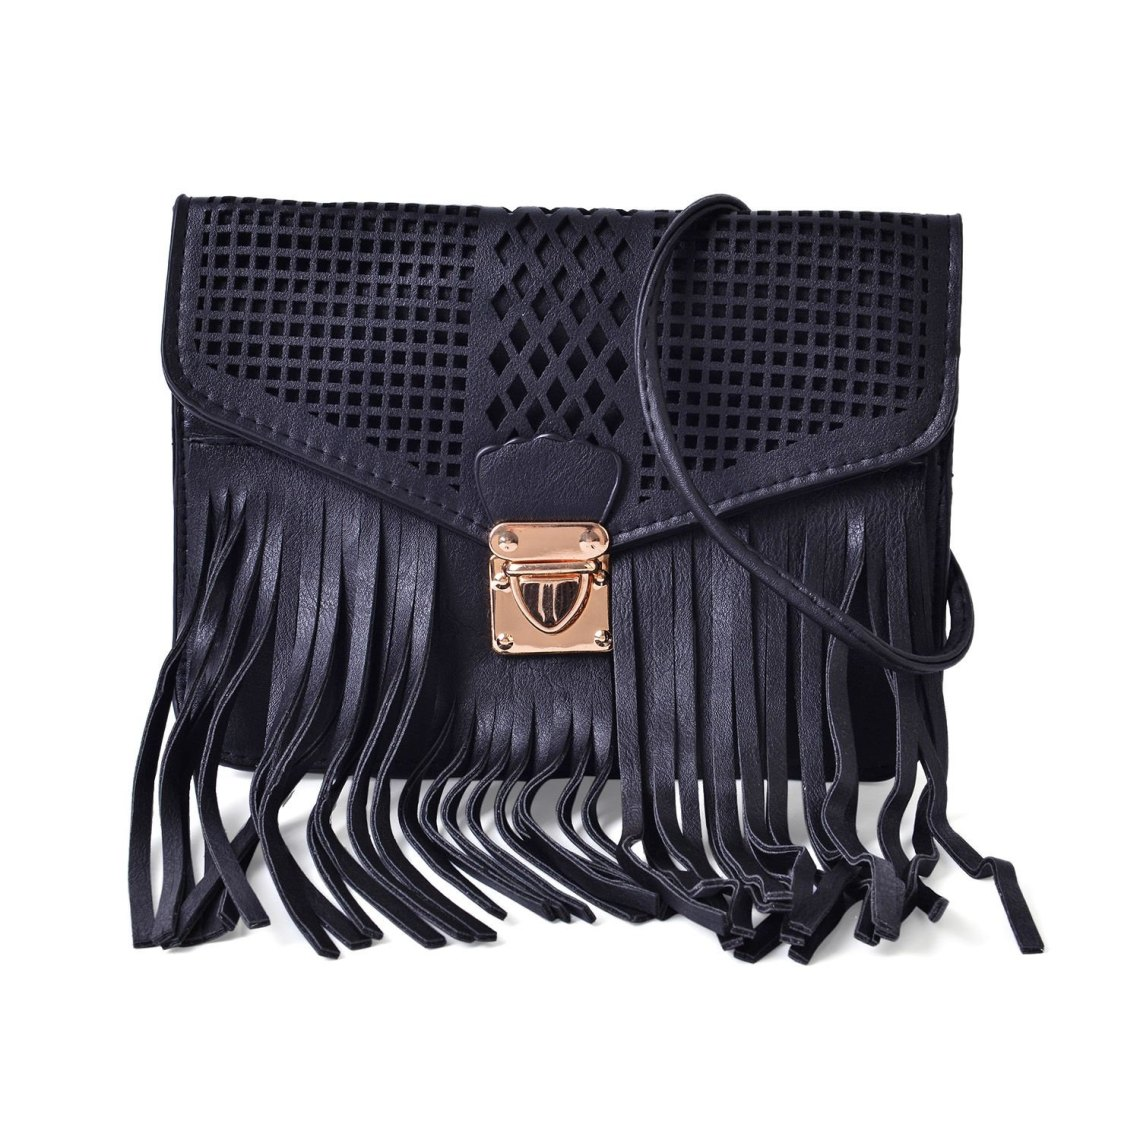 J Francis - Black Faux Leather Crossbody Bag